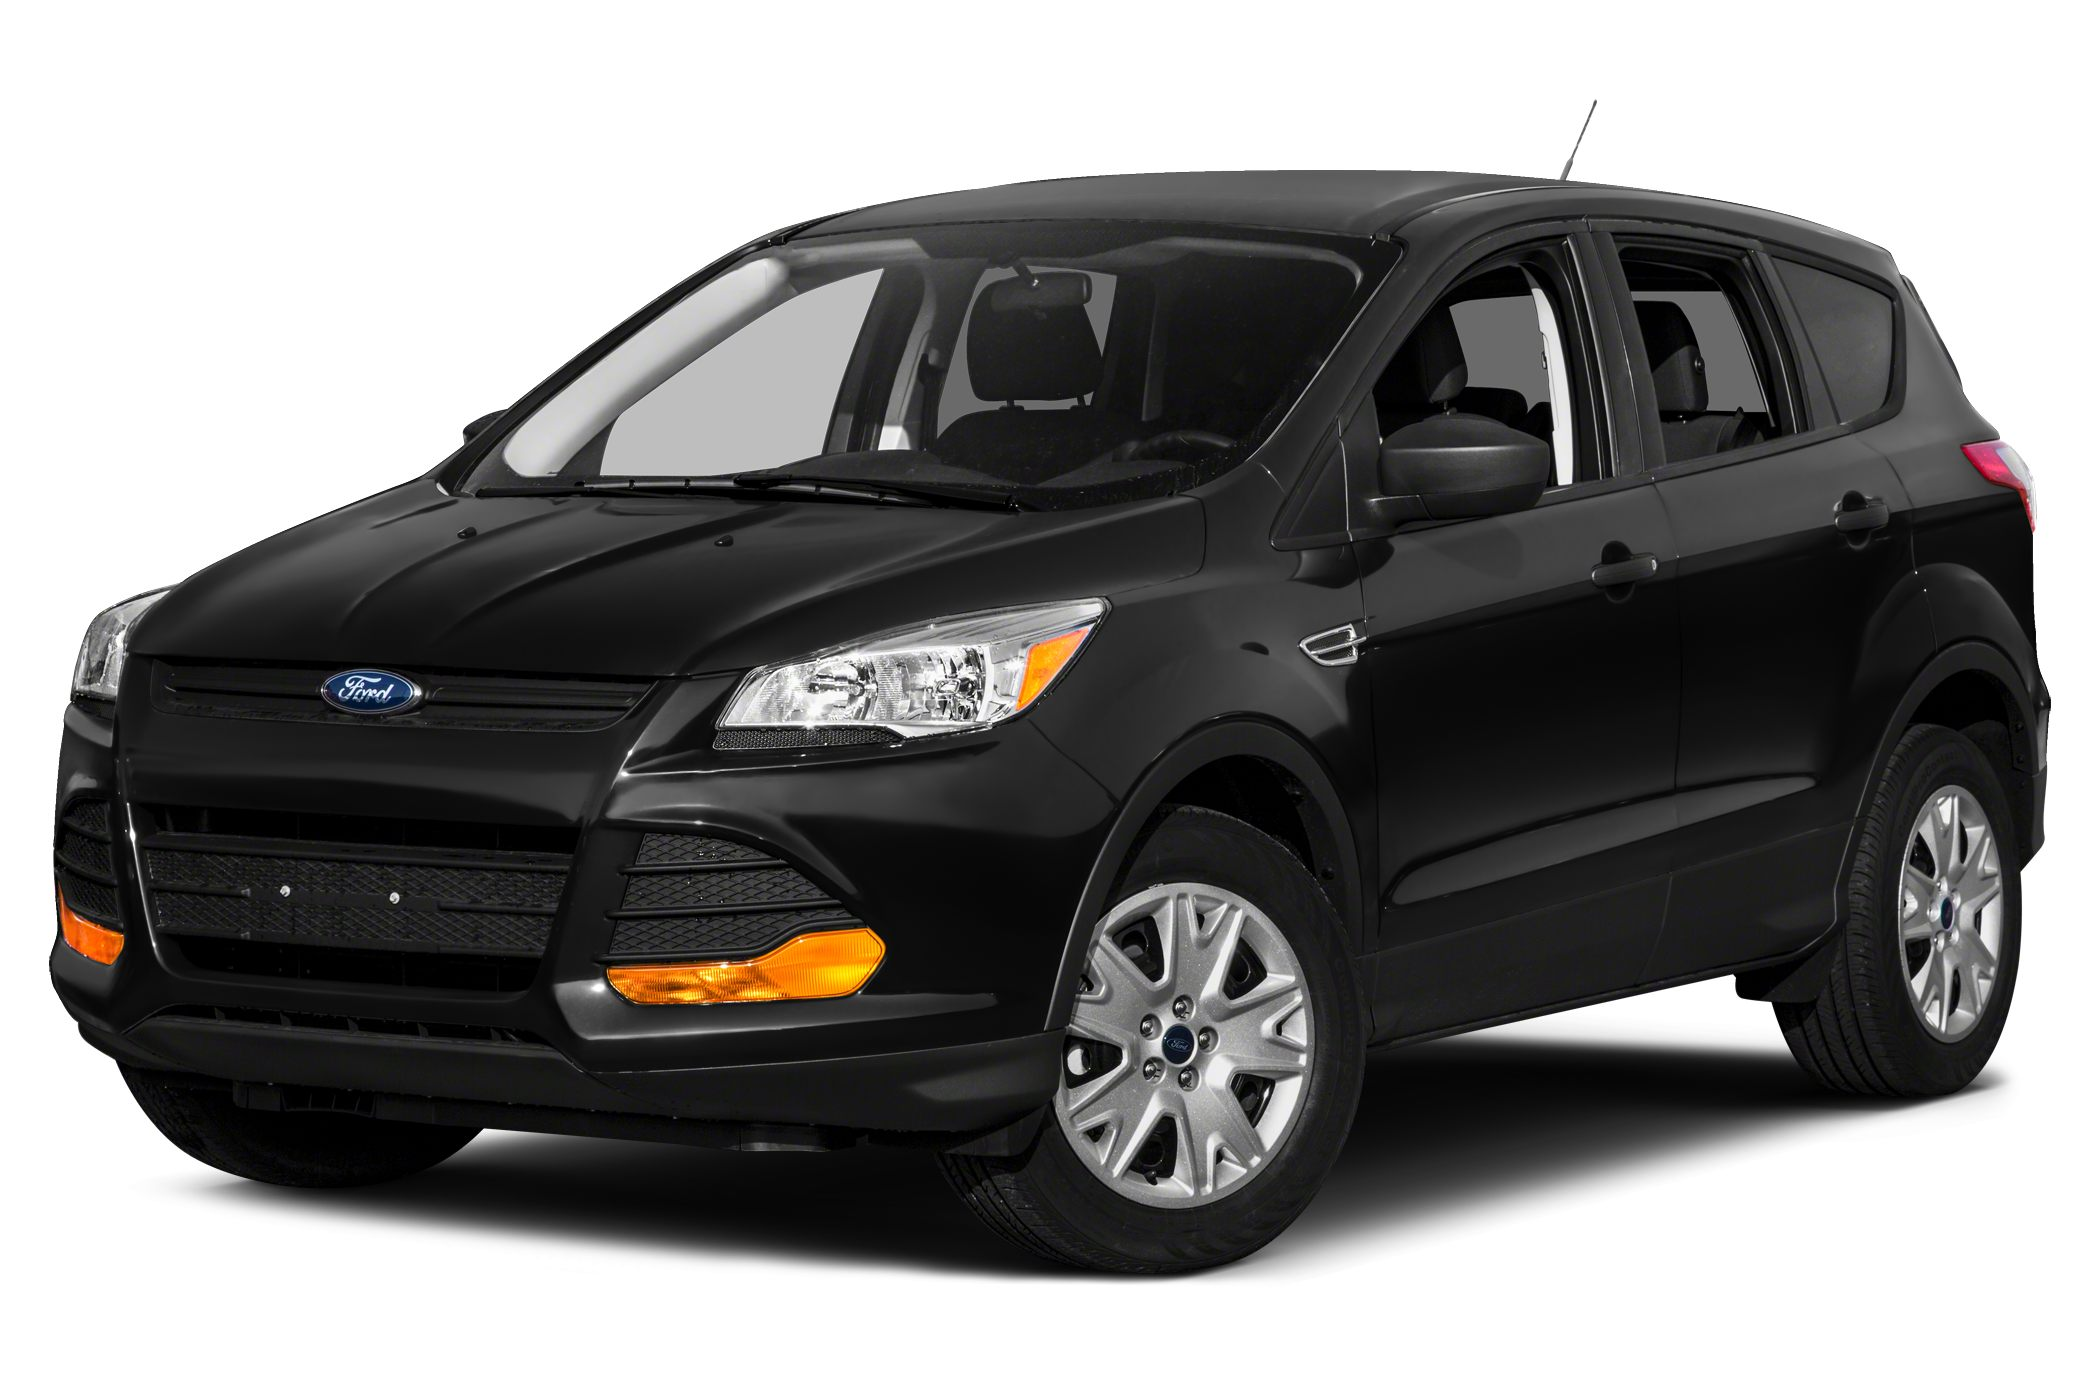 2013 Ford Escape SE Come test drive this 2013 Ford Escape It delivers plenty of power and excelle